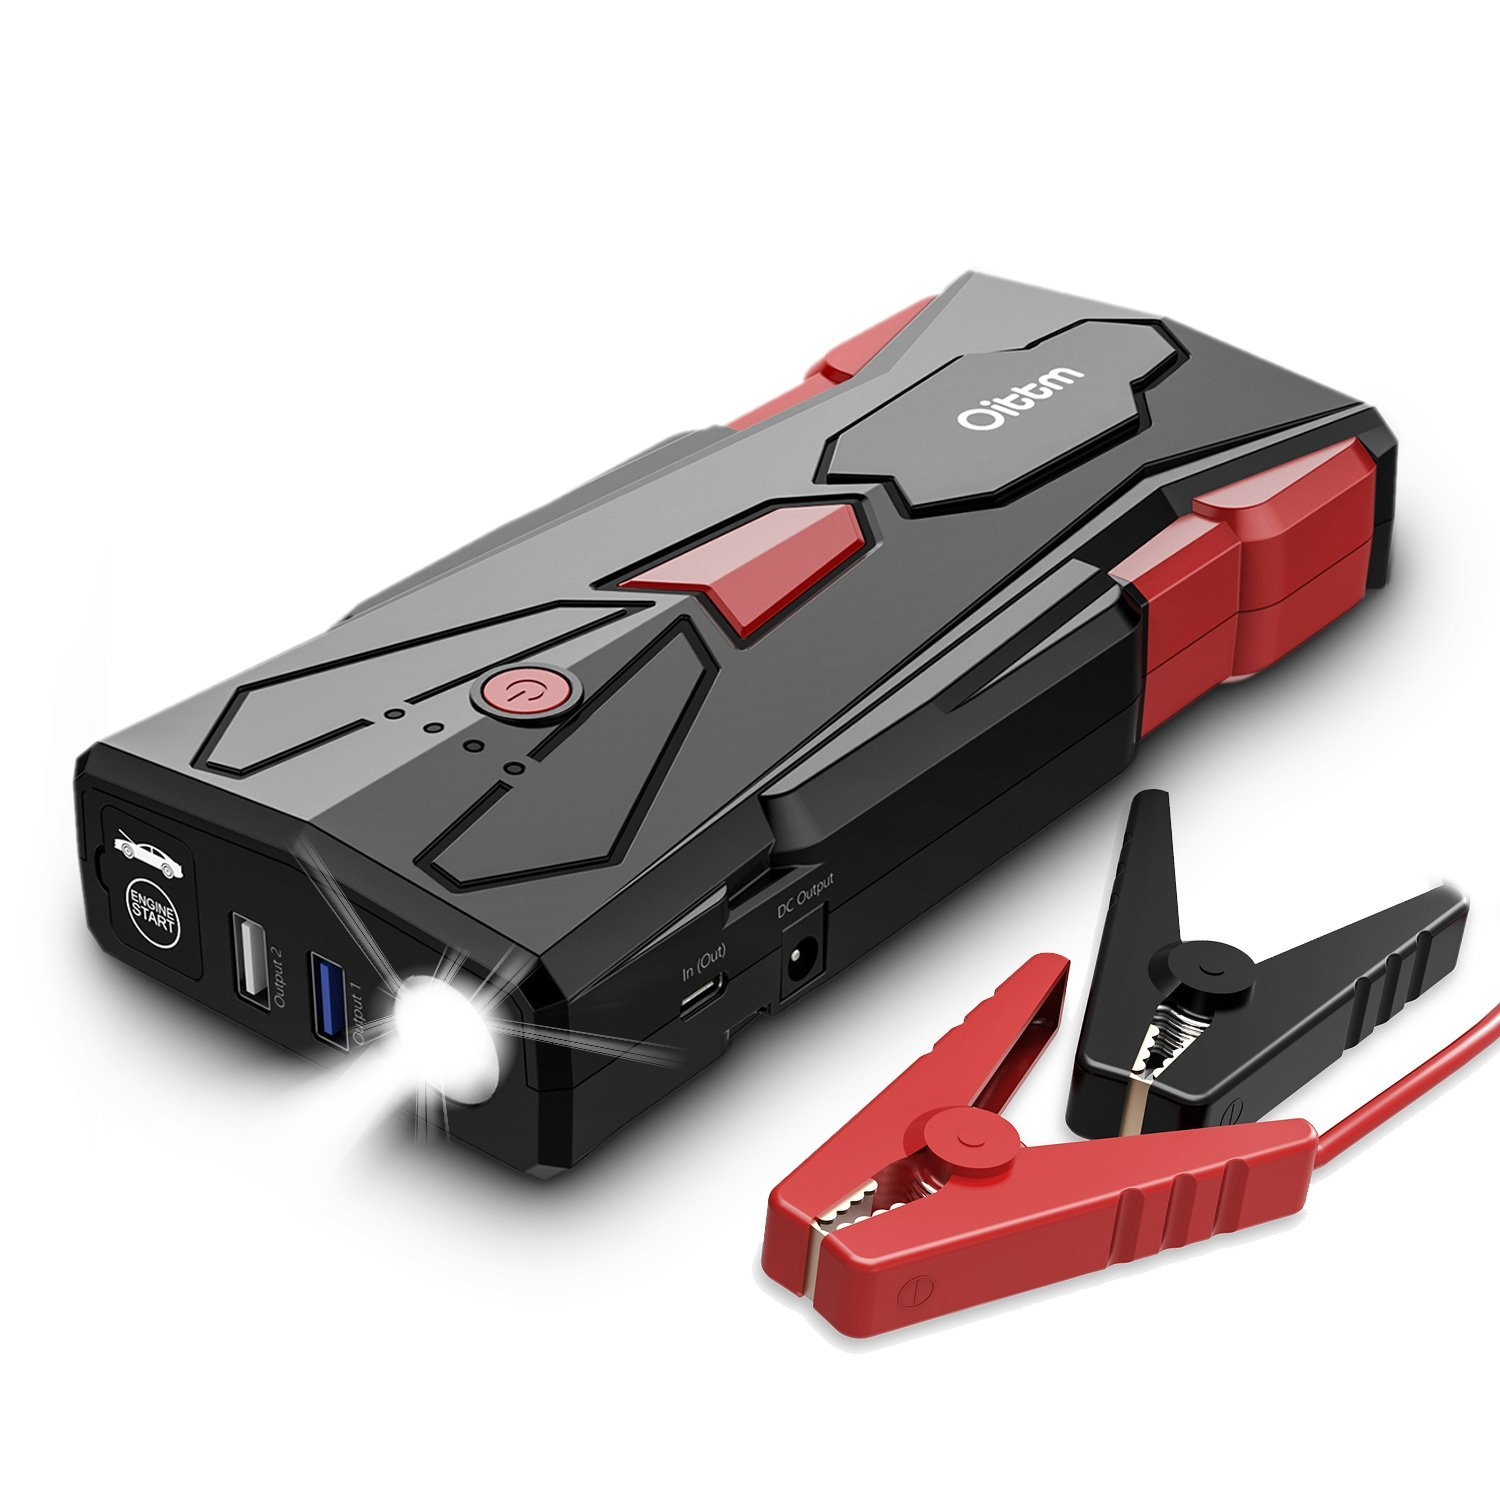 Car Jump Starter, Oittm 1500A Peak Current 15600mAh Car Battery Booster(Up to 8.0L Gas and 6.5L Diesel Engine) Power Bank Portable Charger w/ USB Charge+Quick Charge 3.0+Type-C+12V DC Output+LED Light